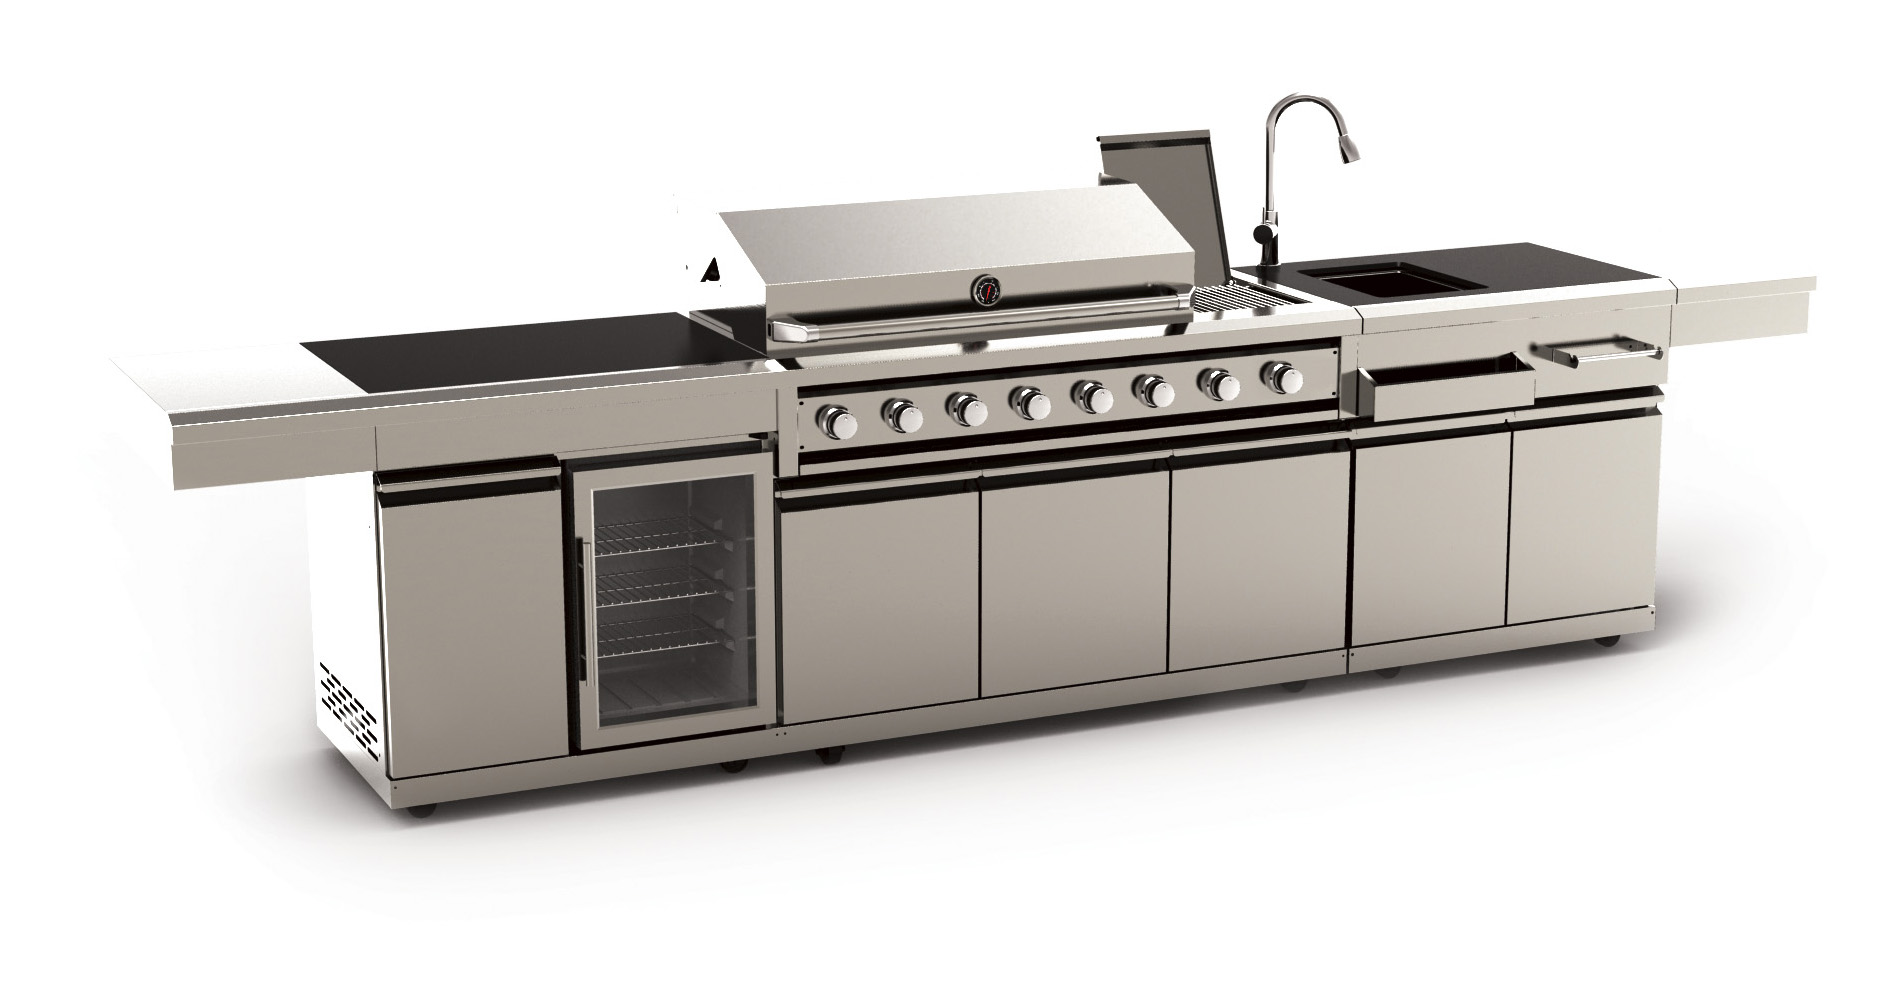 rexmartins adds professional barbecue suites